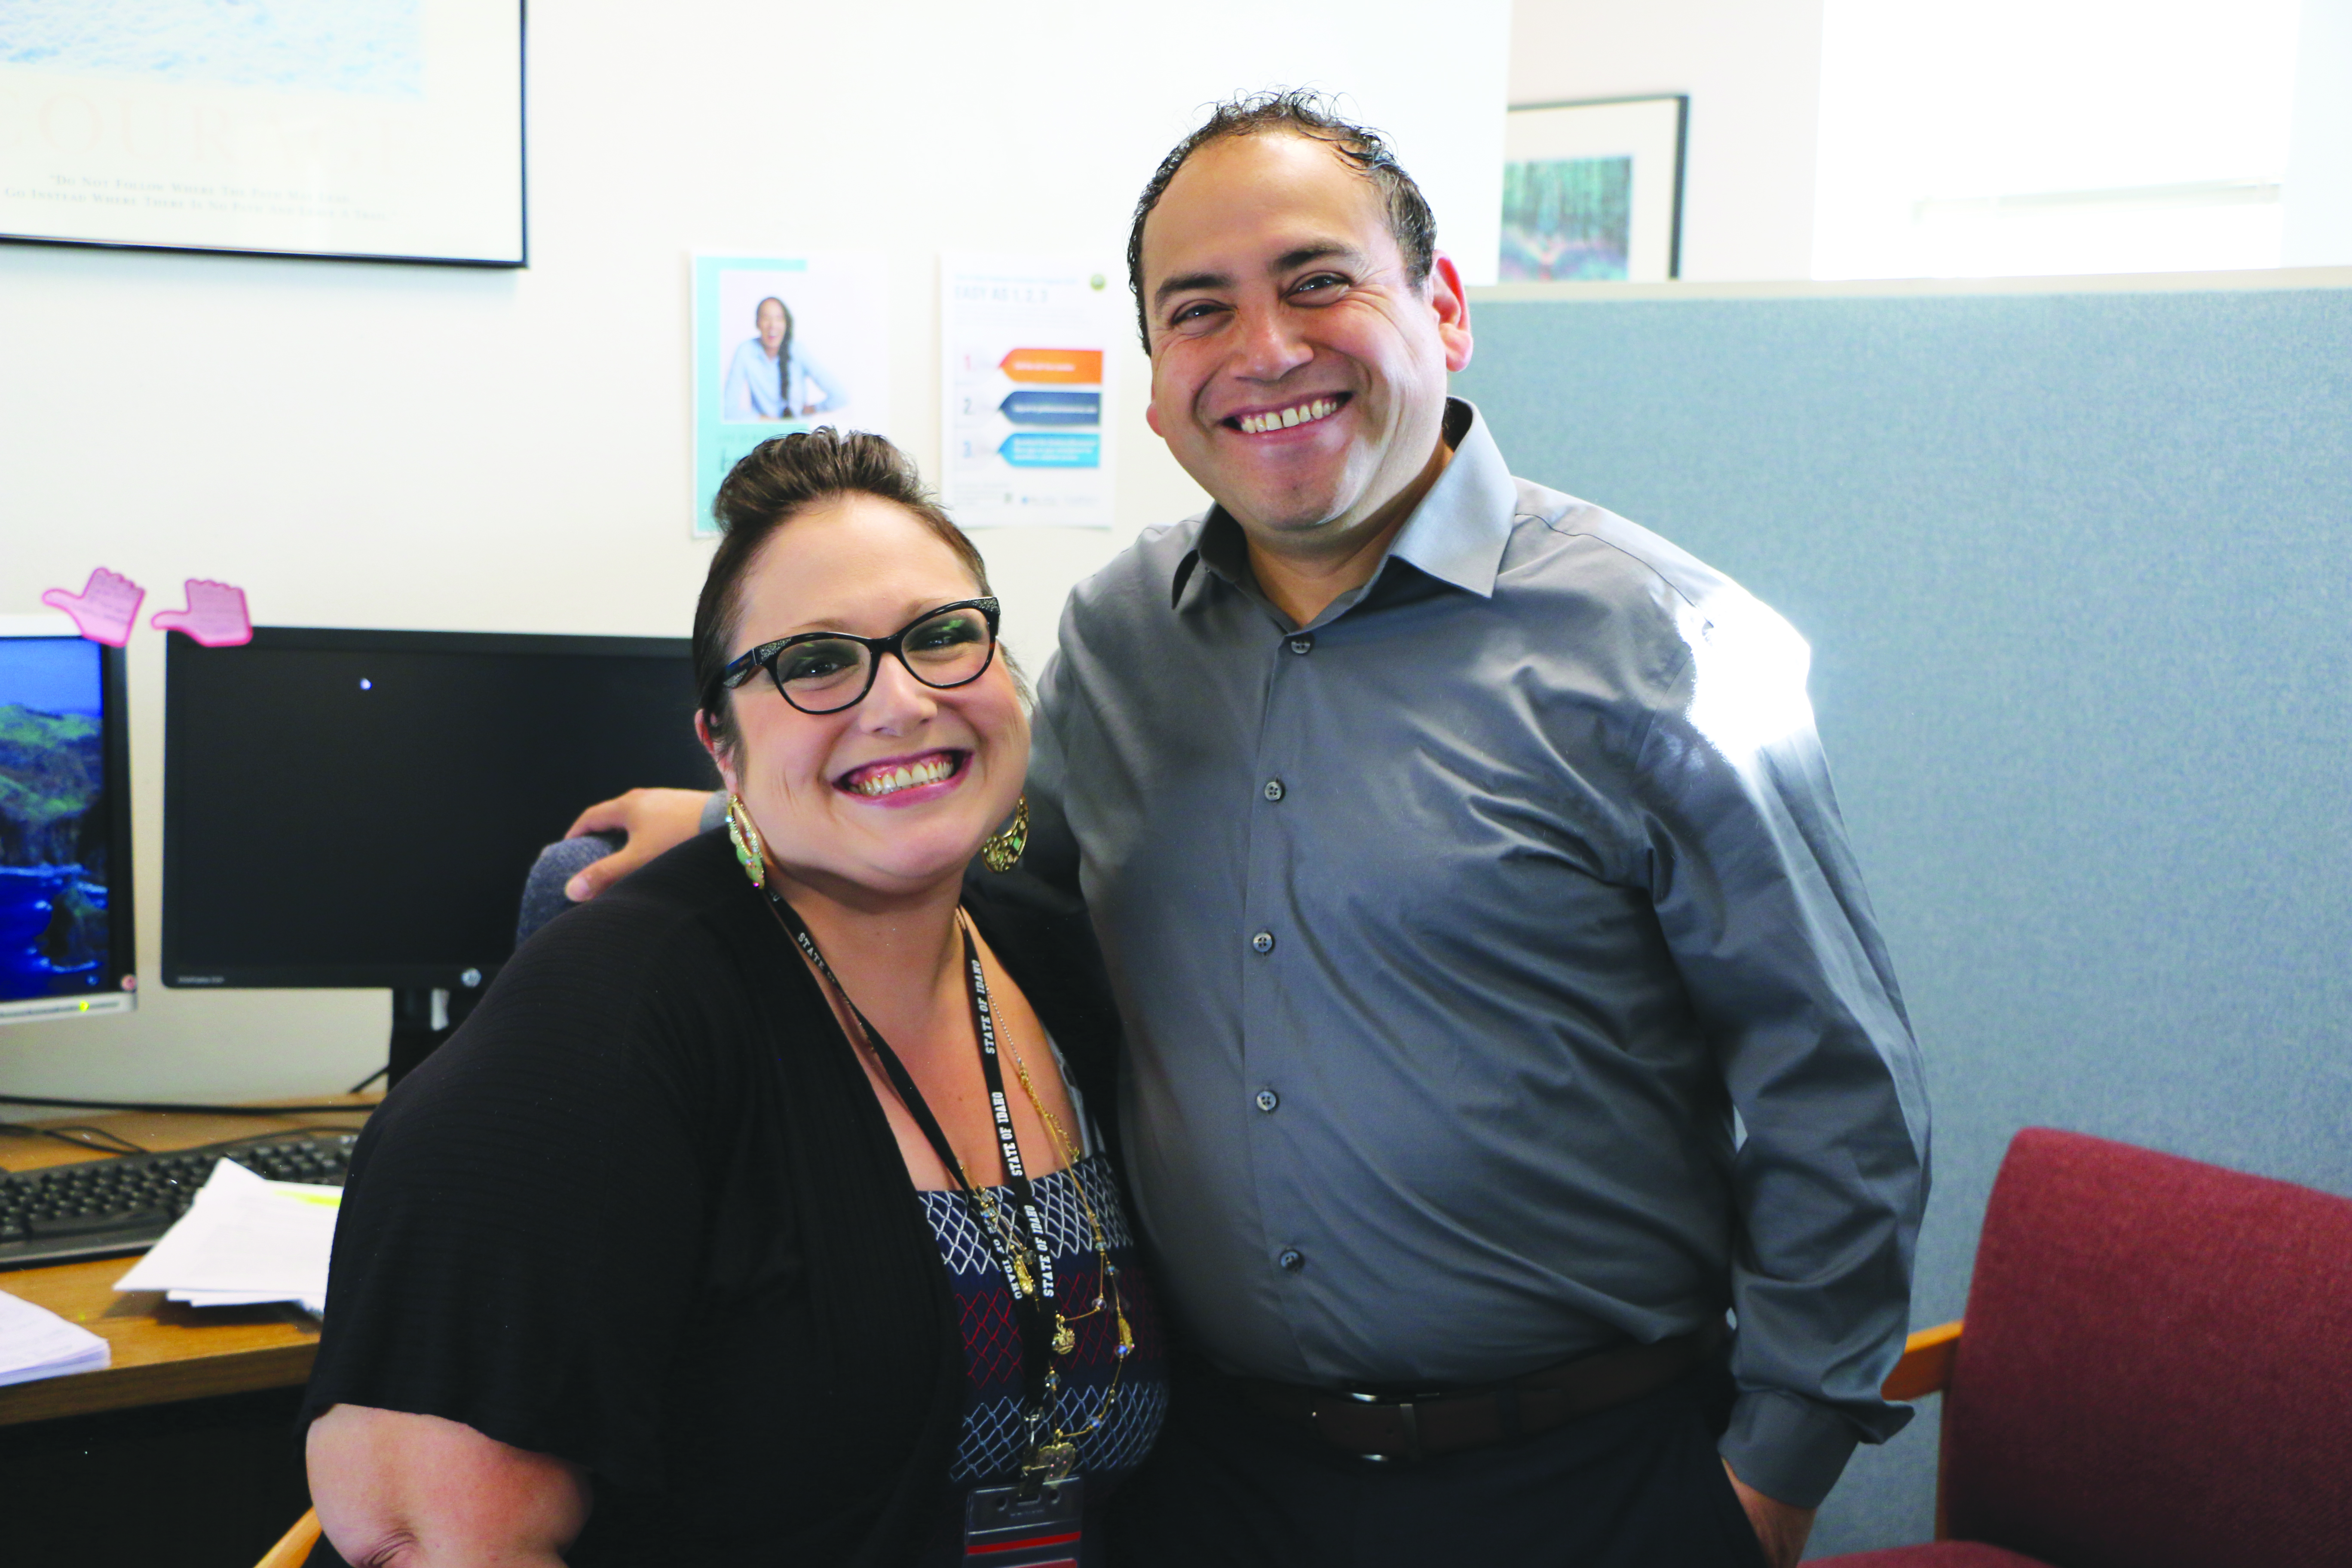 Carlos Ramos, pyschosocial rehabilitation specialist, and Christine Poff, client services technician, pause for a photo before starting their work day in Family and Community Services. See page 3 to read about a day in the life of Carlos.